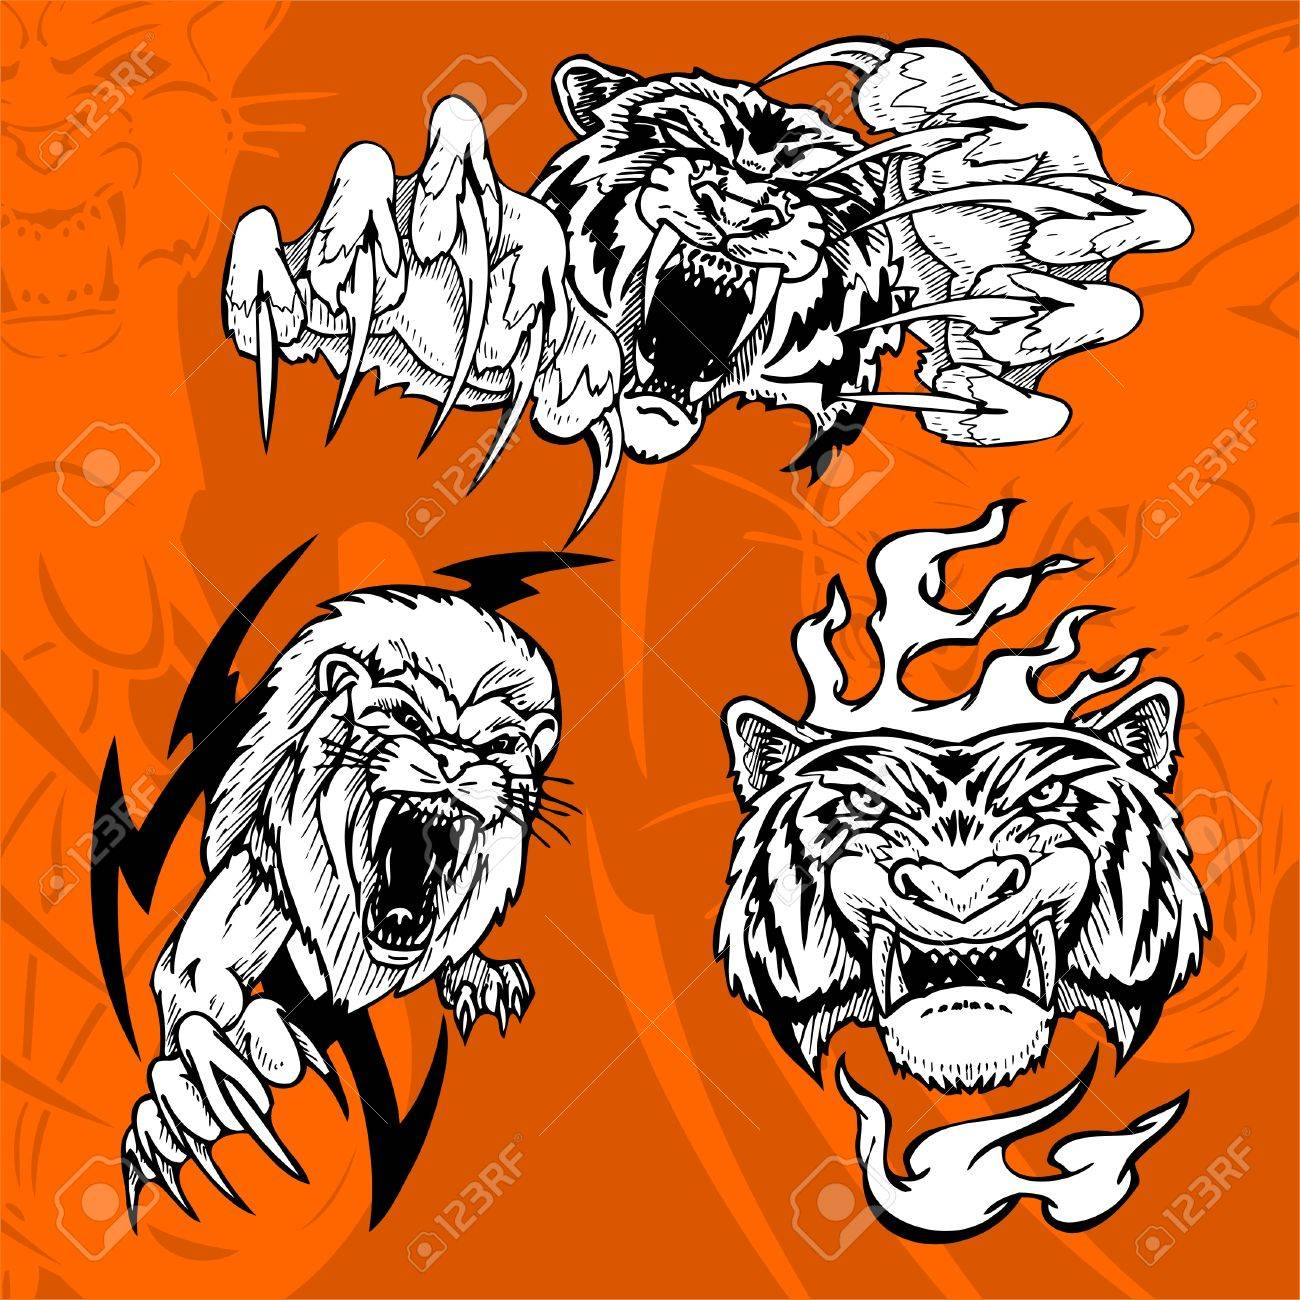 Tiger and Lion.Predators. Stock Vector - 7230730